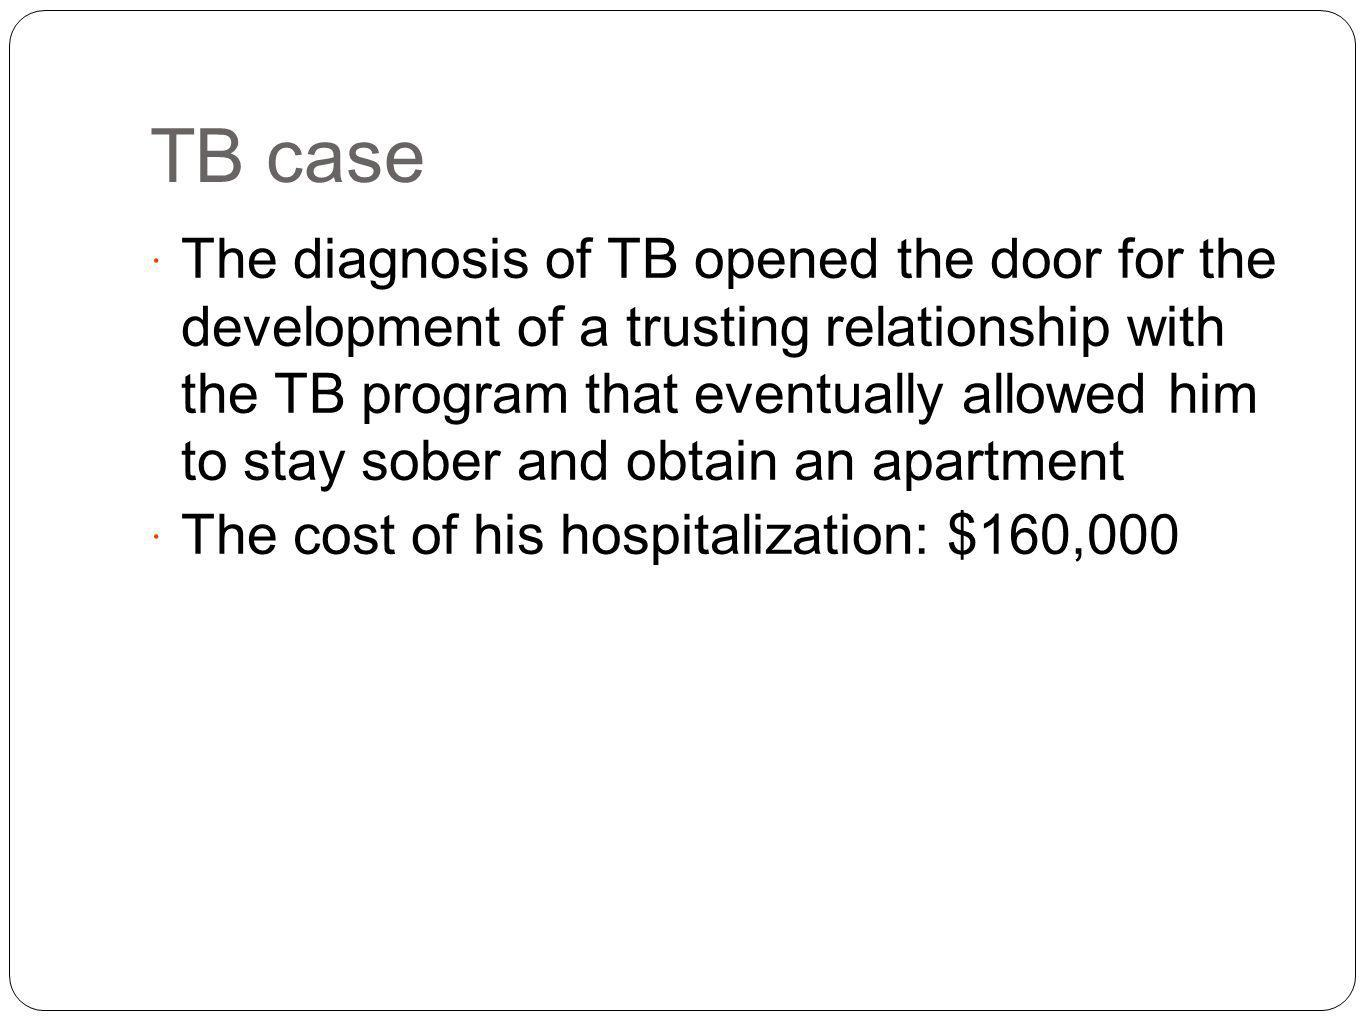 TB case The diagnosis of TB opened the door for the development of a trusting relationship with the TB program that eventually allowed him to stay sober and obtain an apartment The cost of his hospitalization: $160,000